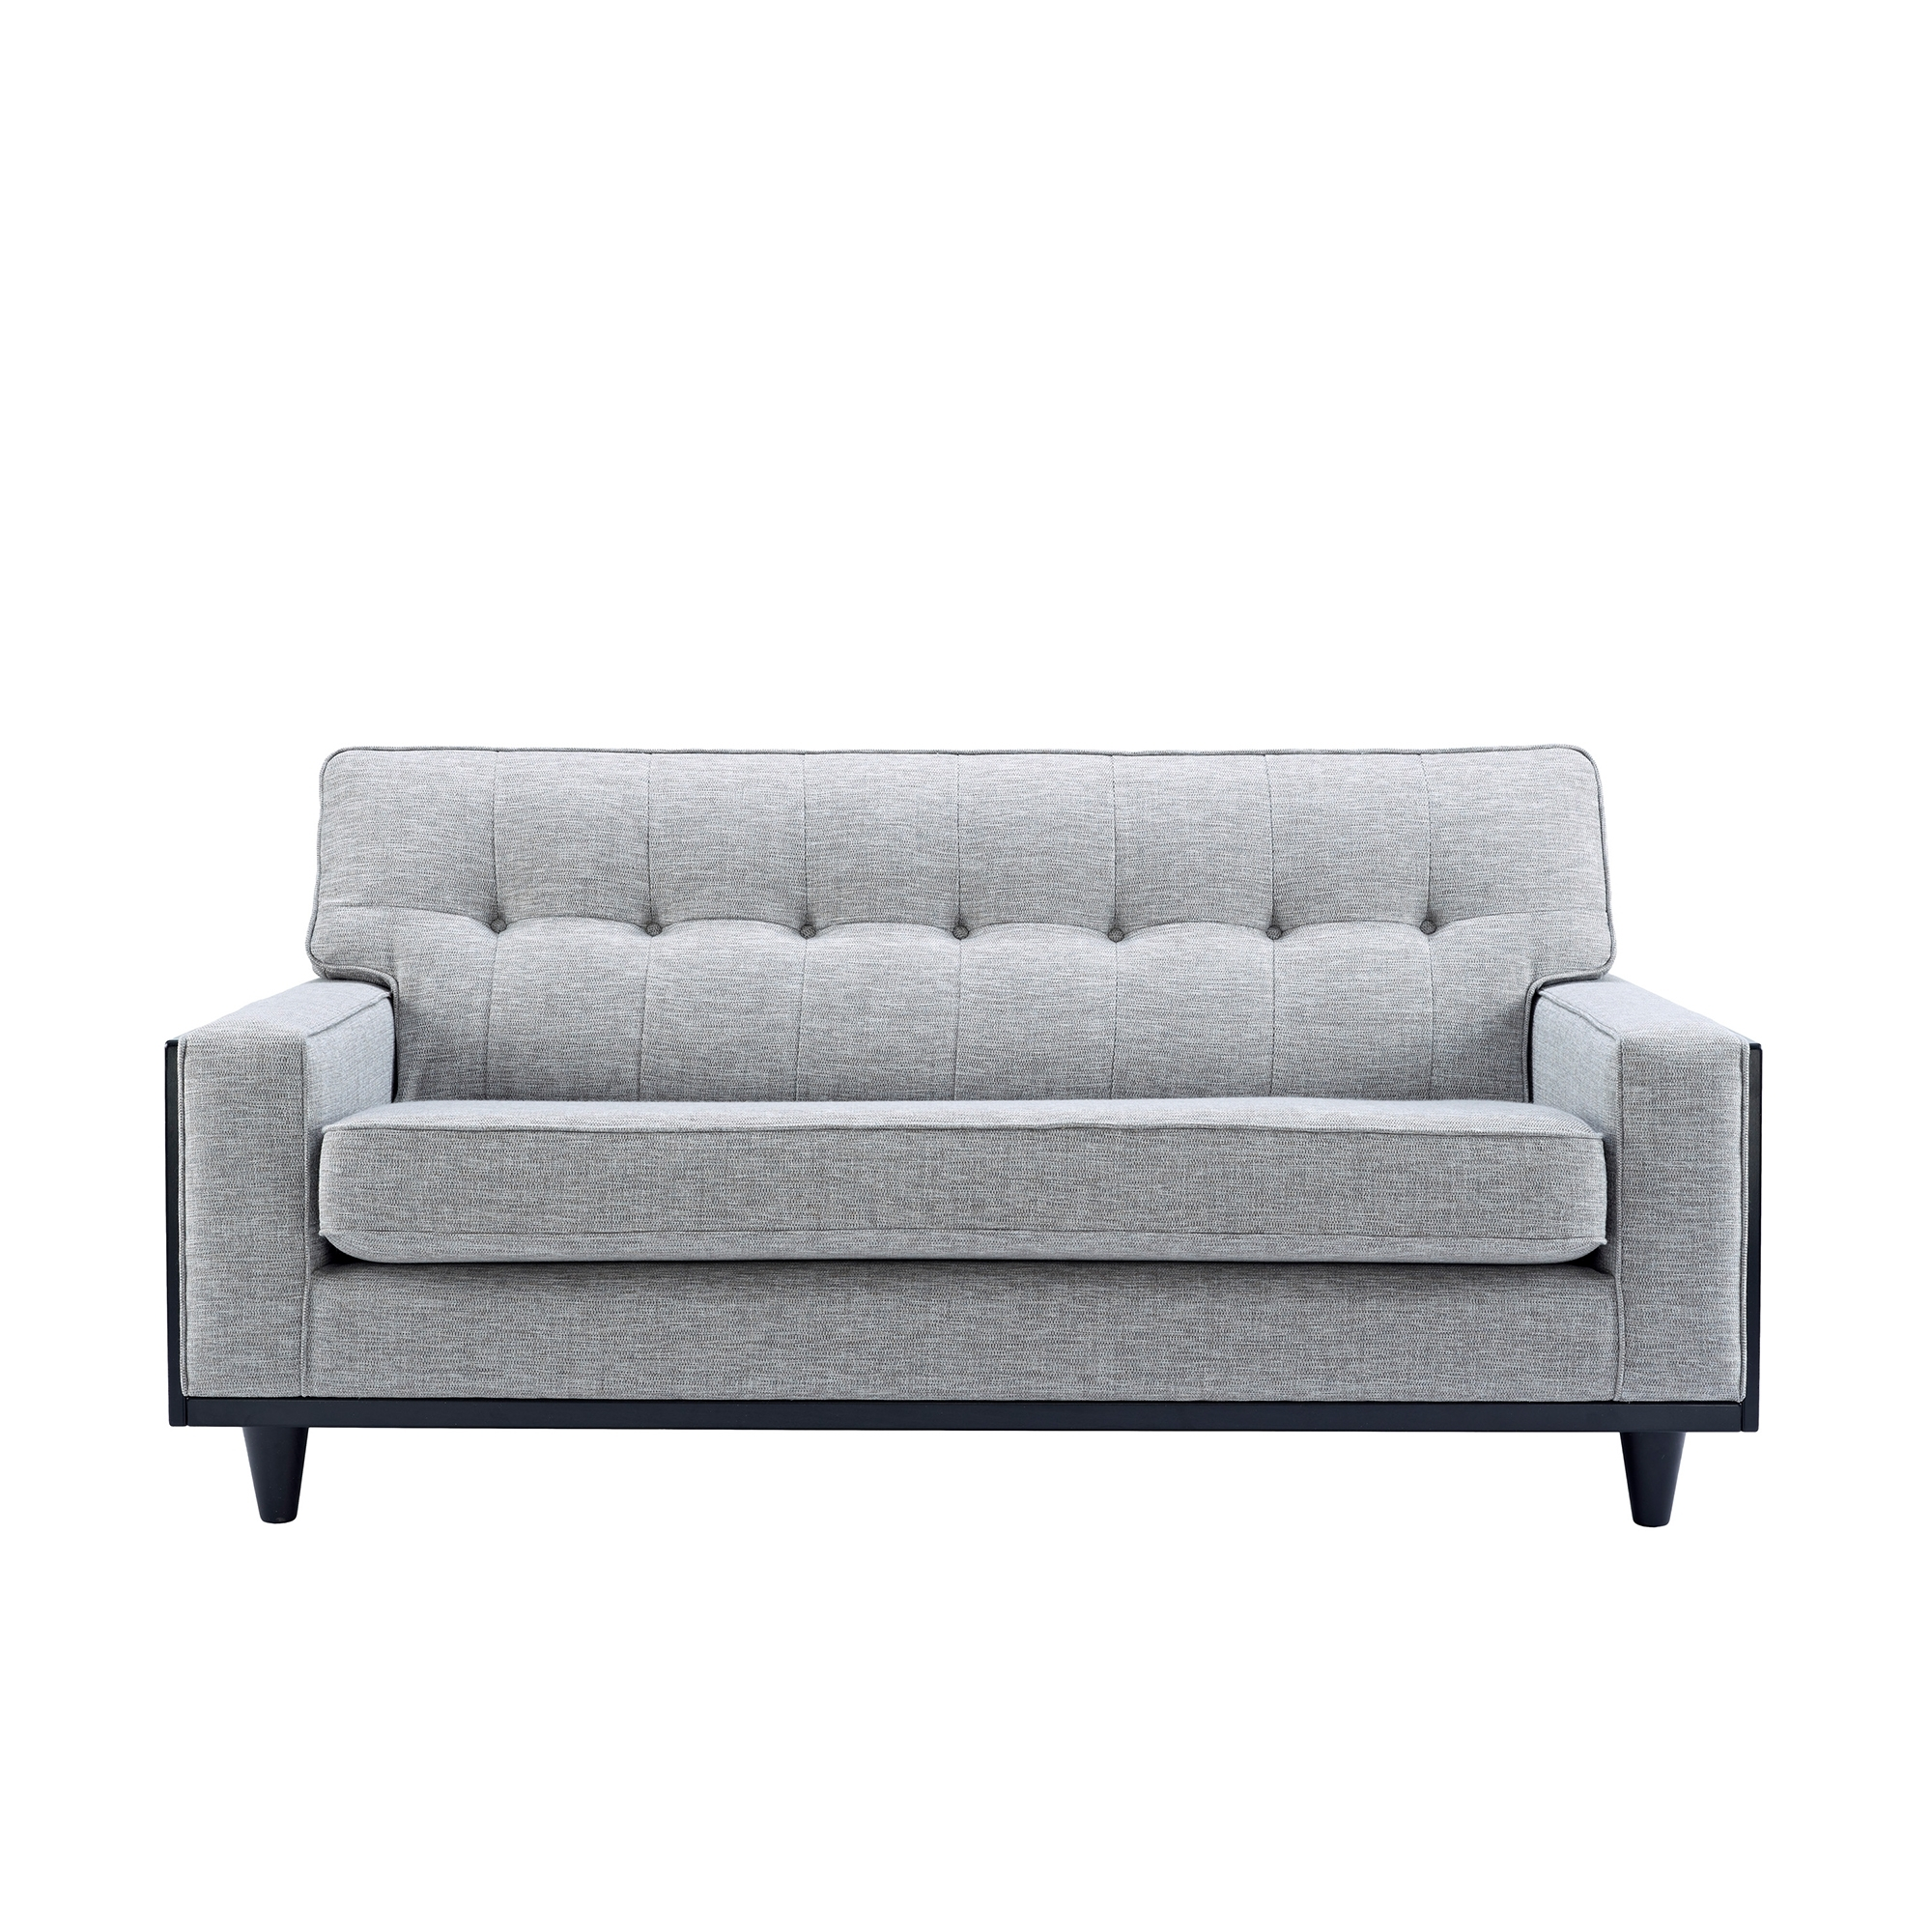 G Plan Vintage Fifty Nine Small Sofa G Plan Upholstery Cookes